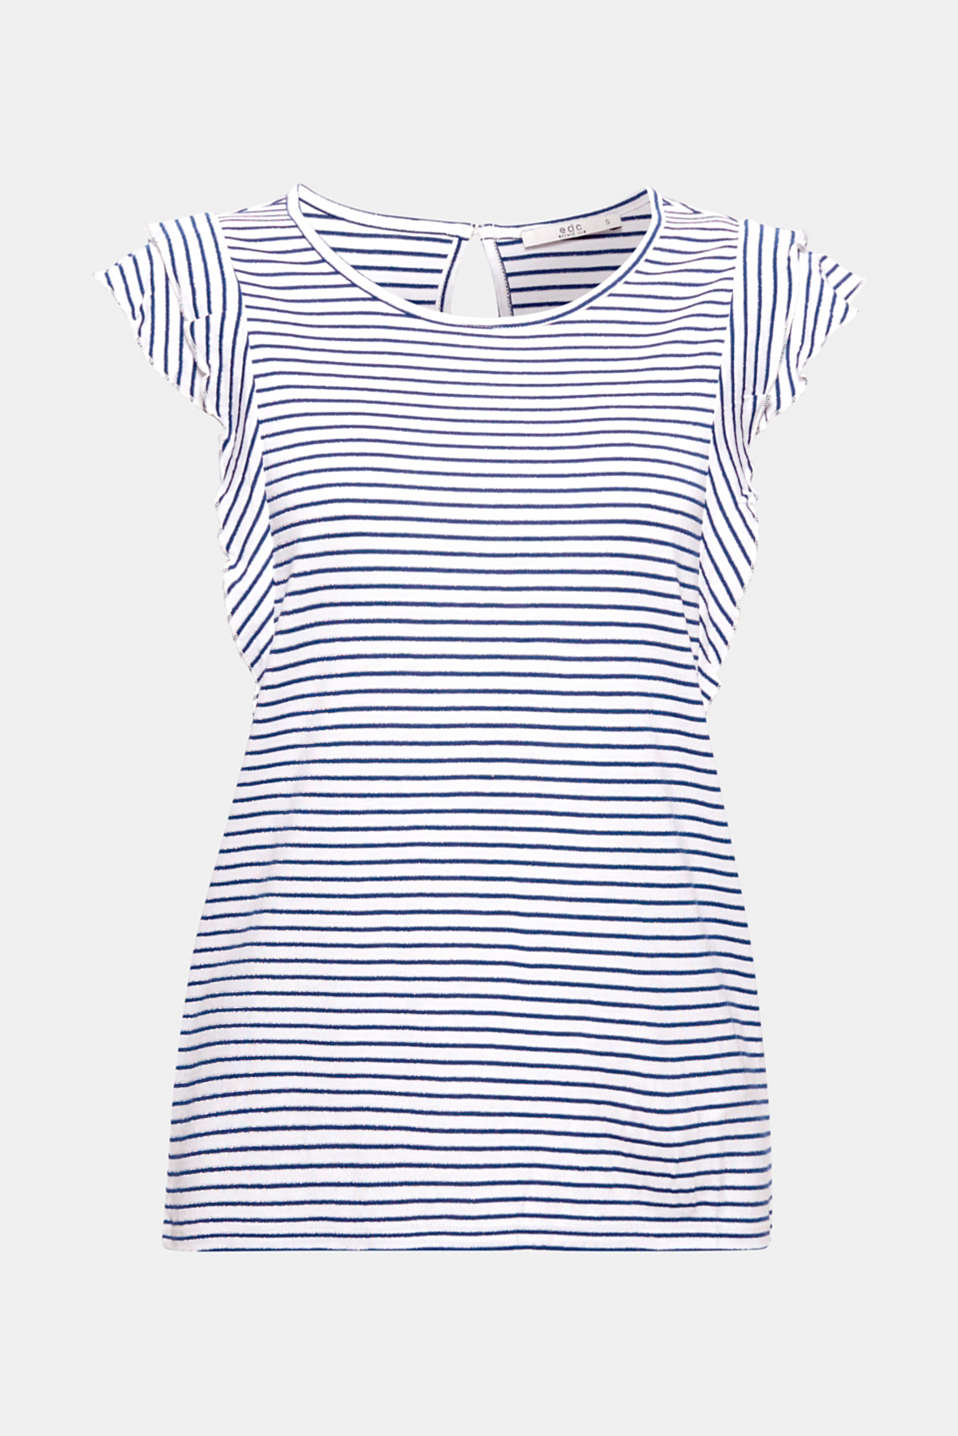 Fine stripes with a glitter effect and feminine flounce sleeves give this top its innovative, nautical trend look.